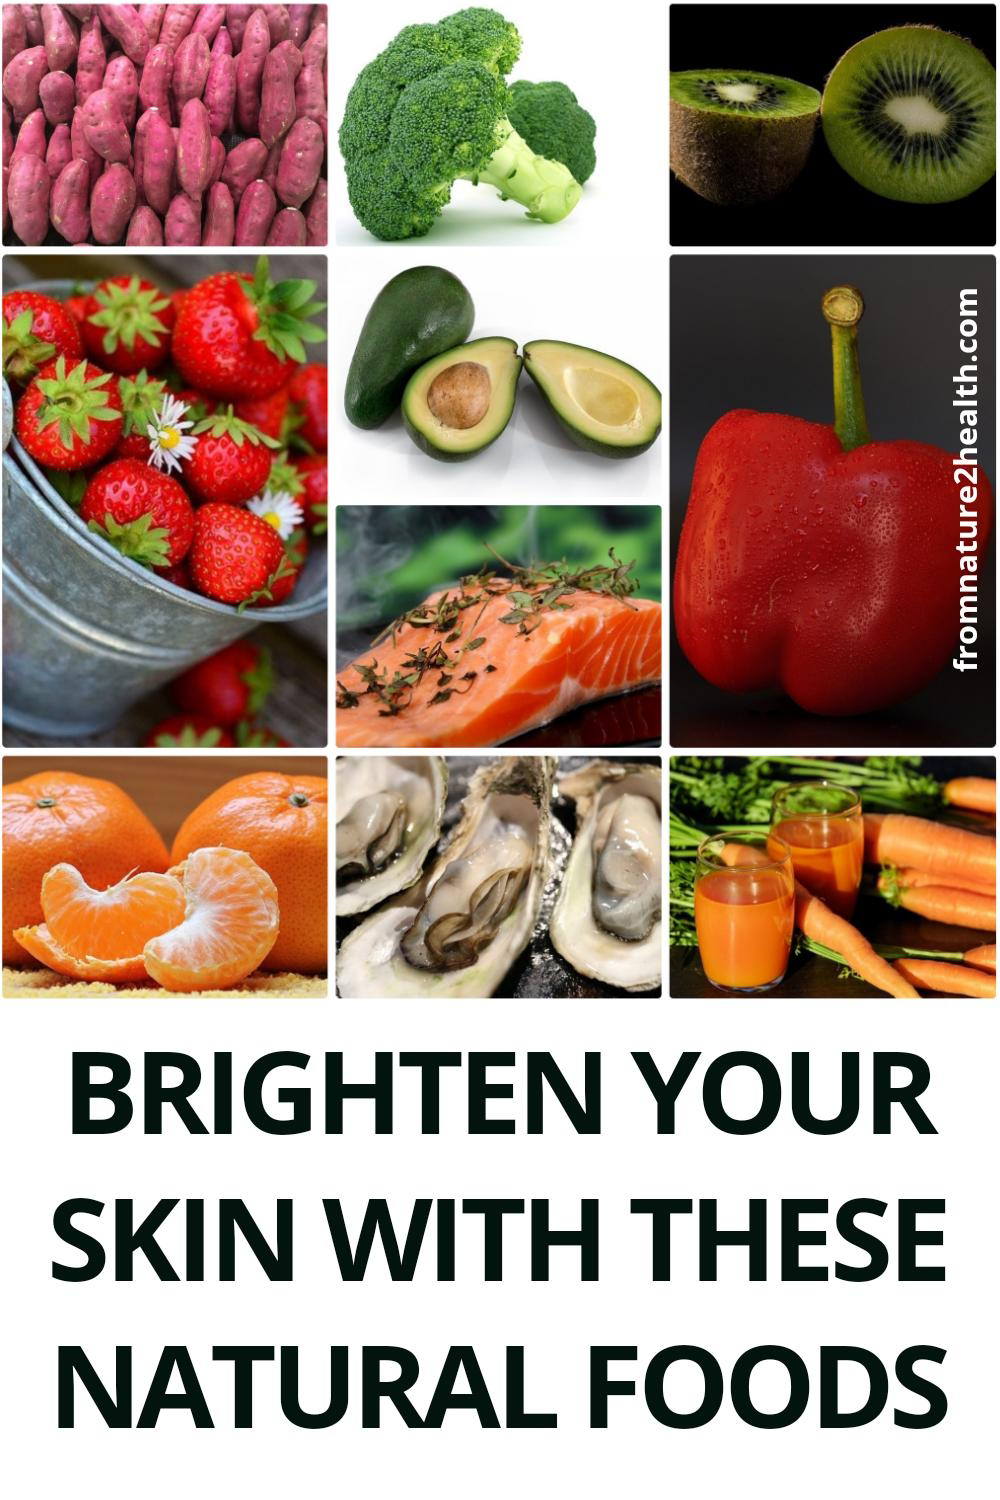 Brighten Your Skin with These Natural Foods